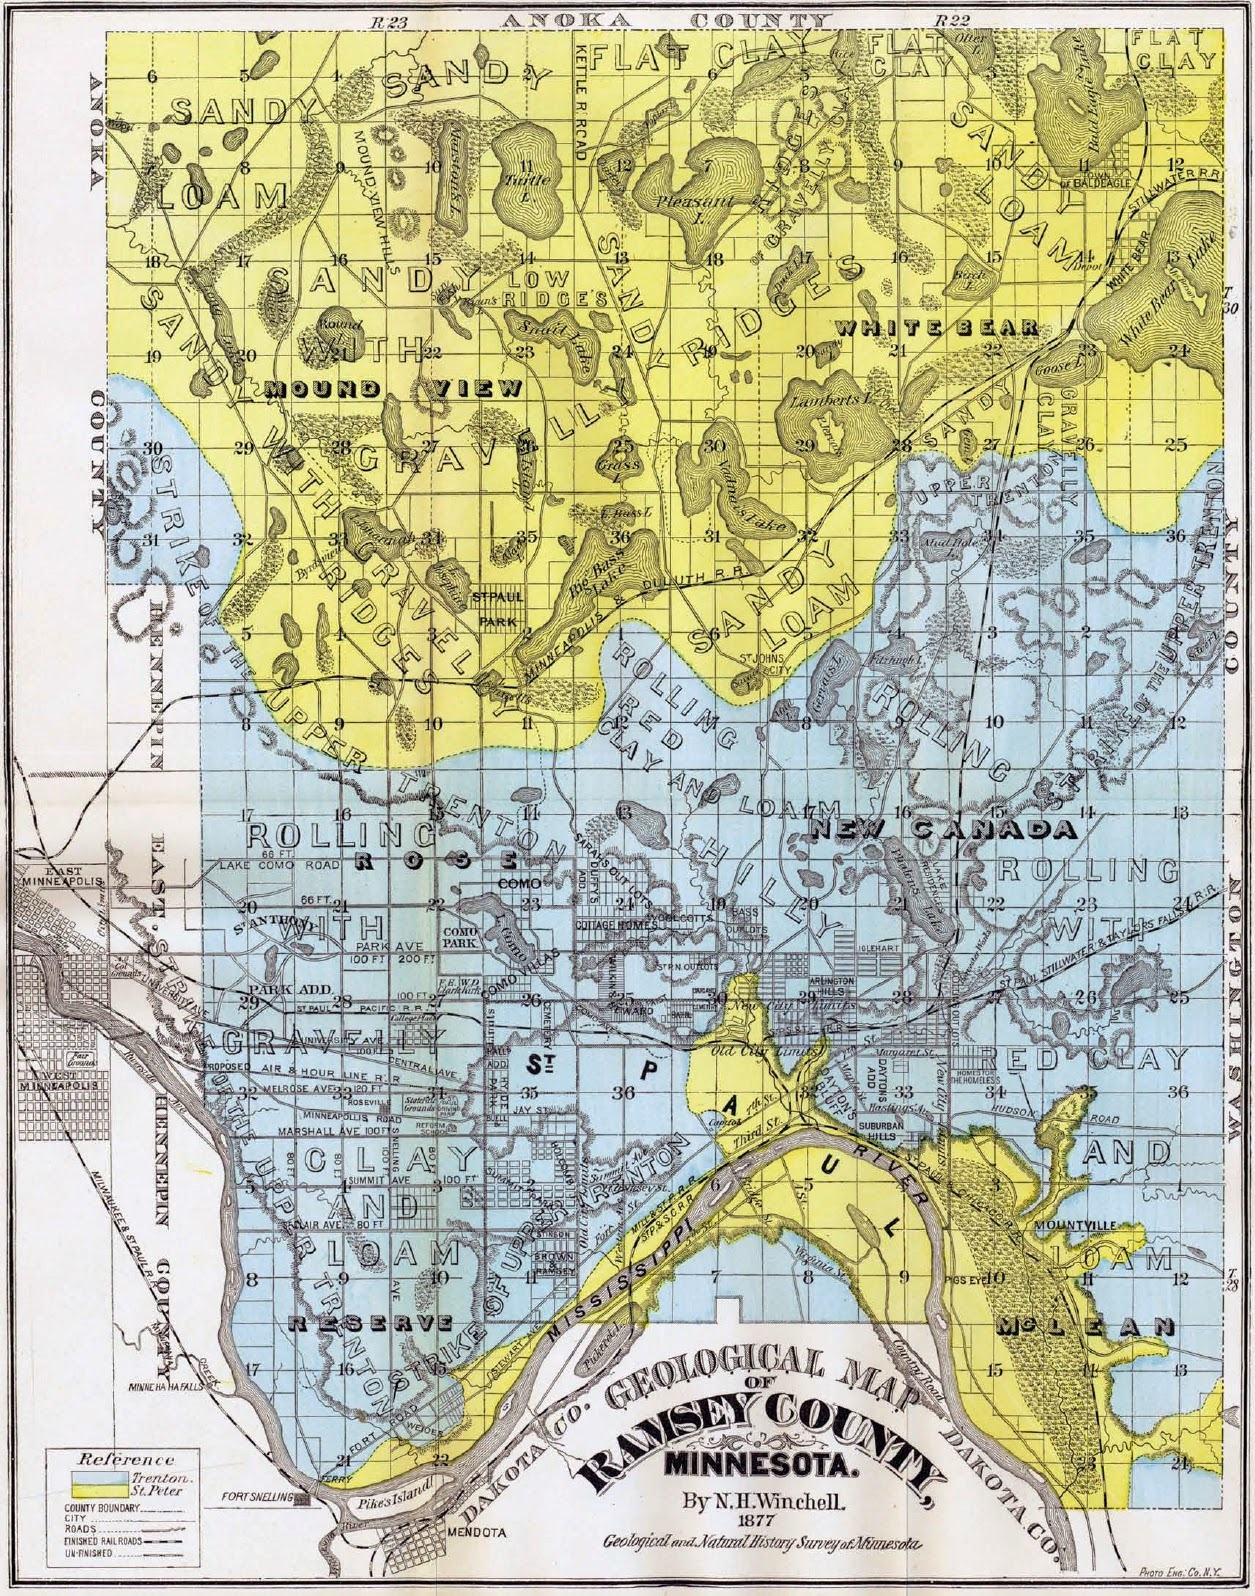 Equatorial Minnesota Historic Twin Cities geologic maps and photos